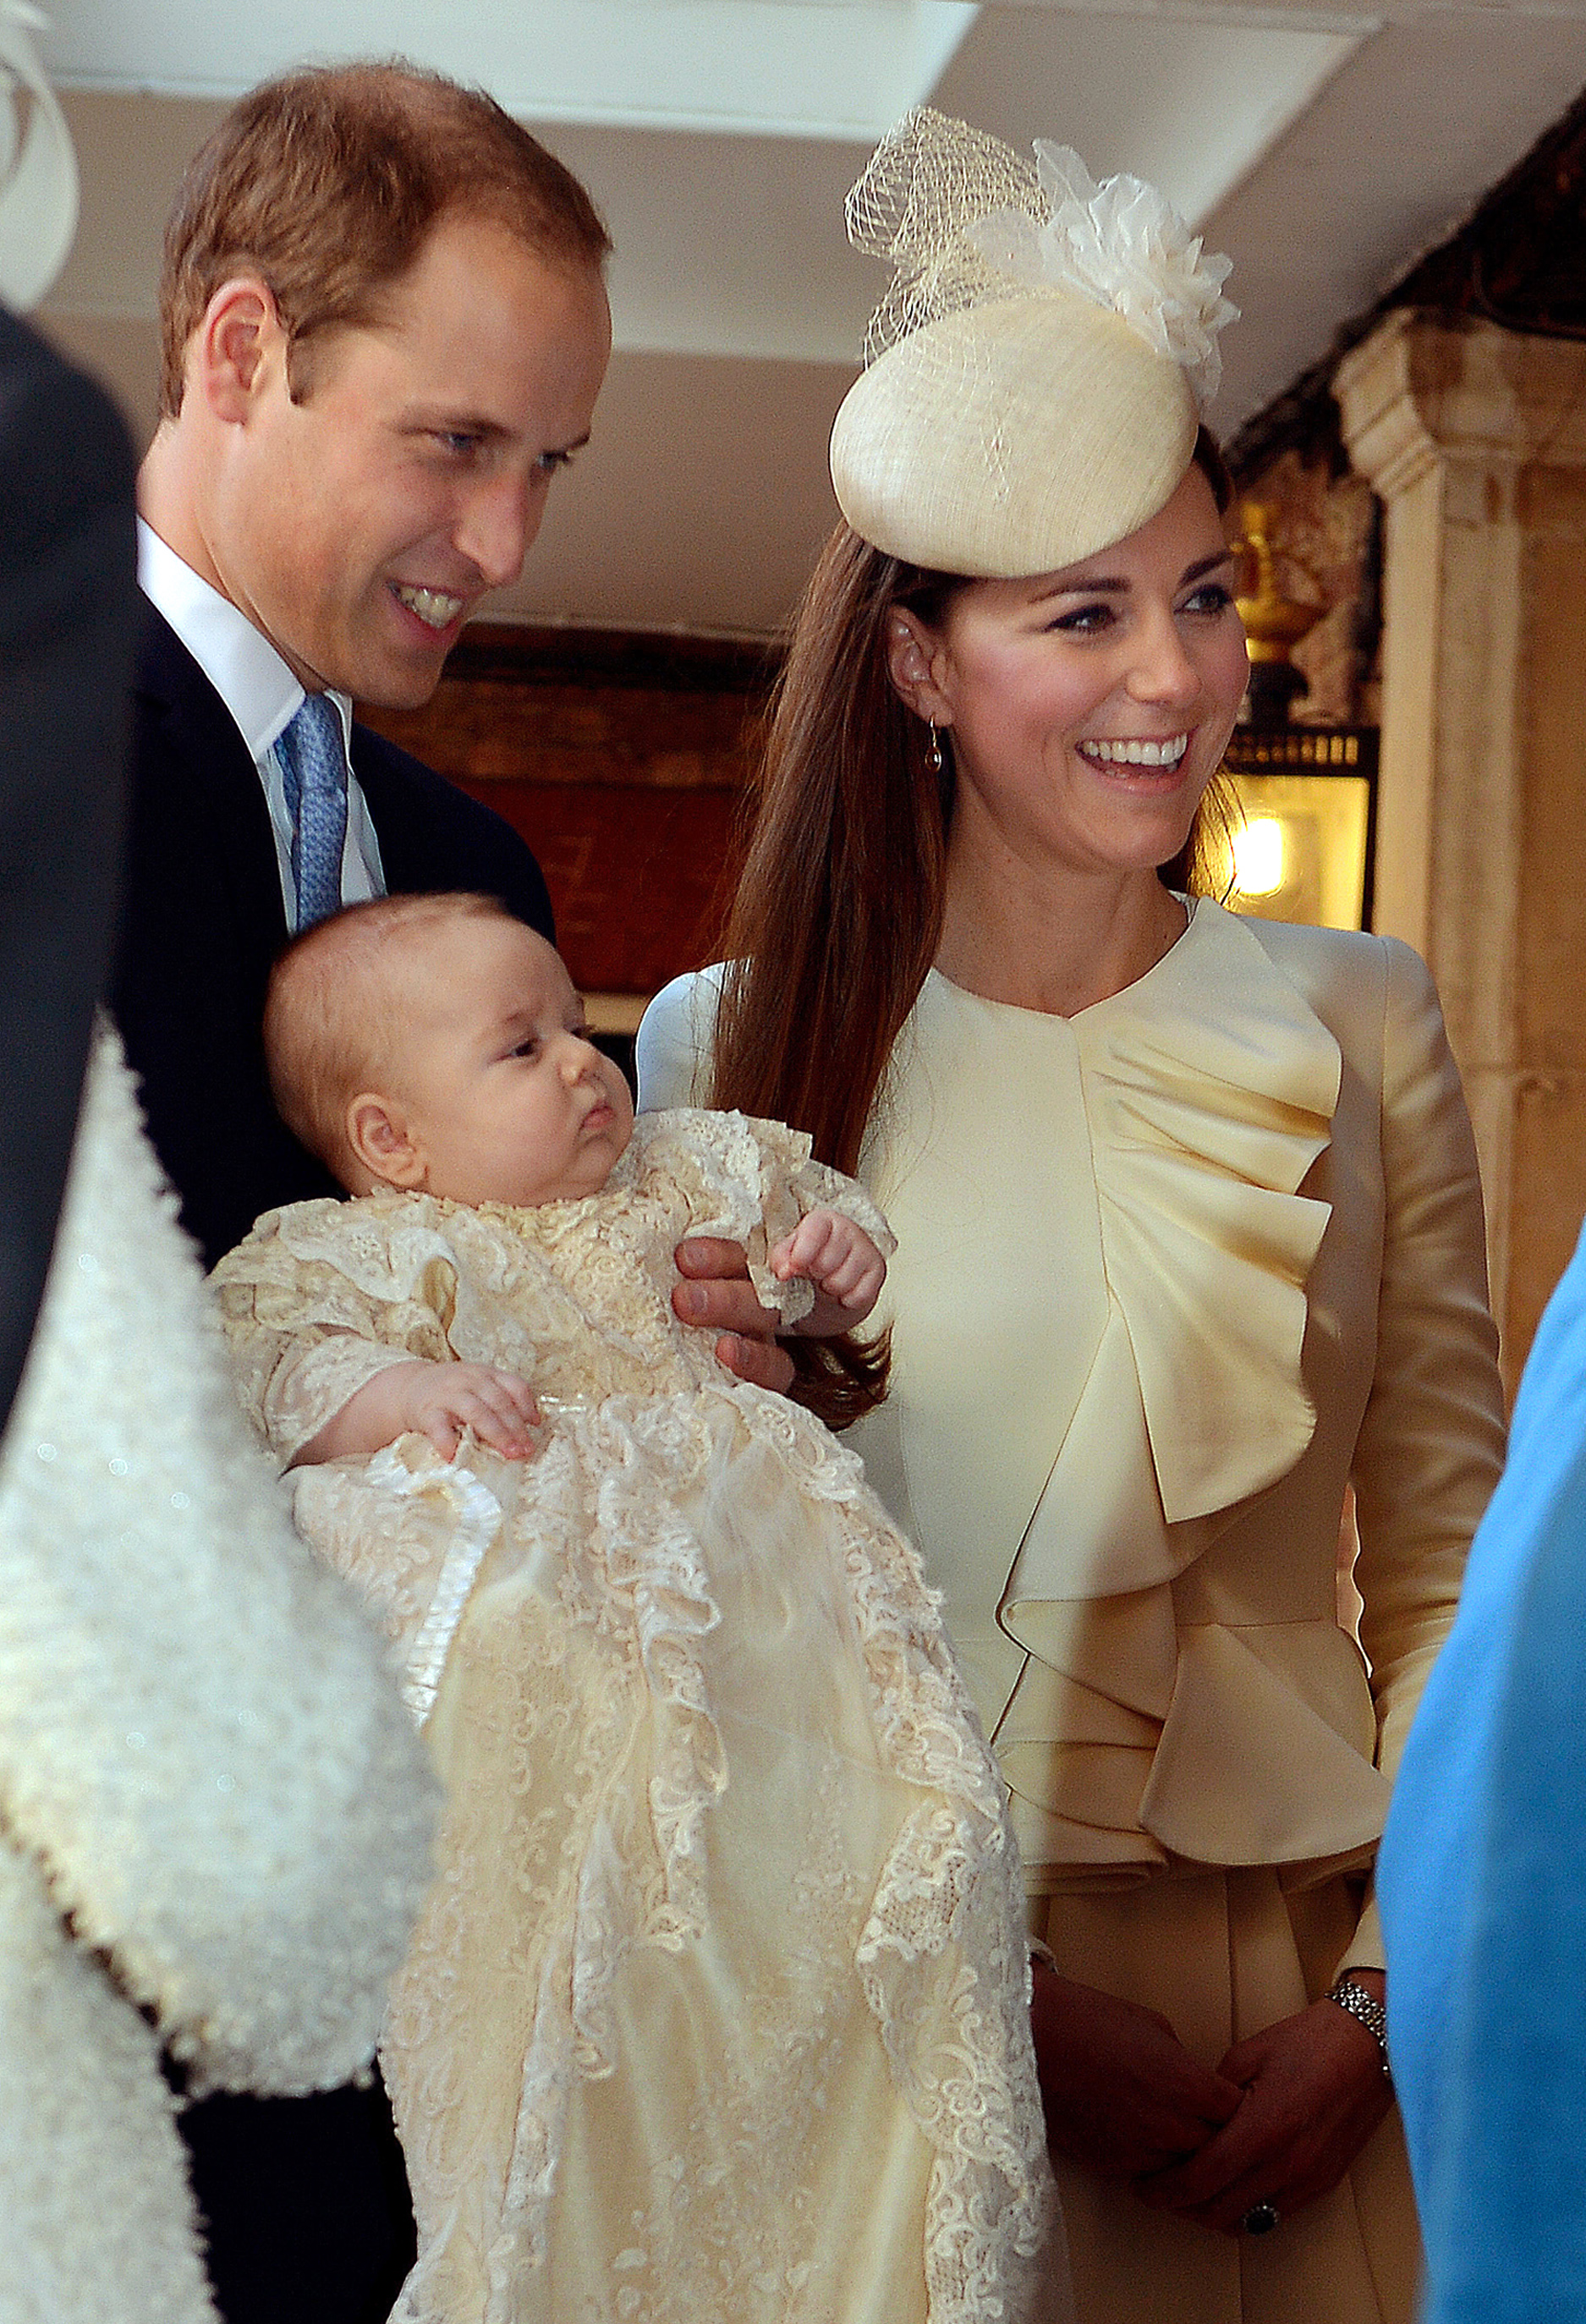 The Duke of Cambridge and his wife Catherine, Duchess of Cambridge, arrive with their son Prince George at Chapel Royal in St James's Palace in central London on October 23, 2013, ahead of the christening of the three month-old prince.